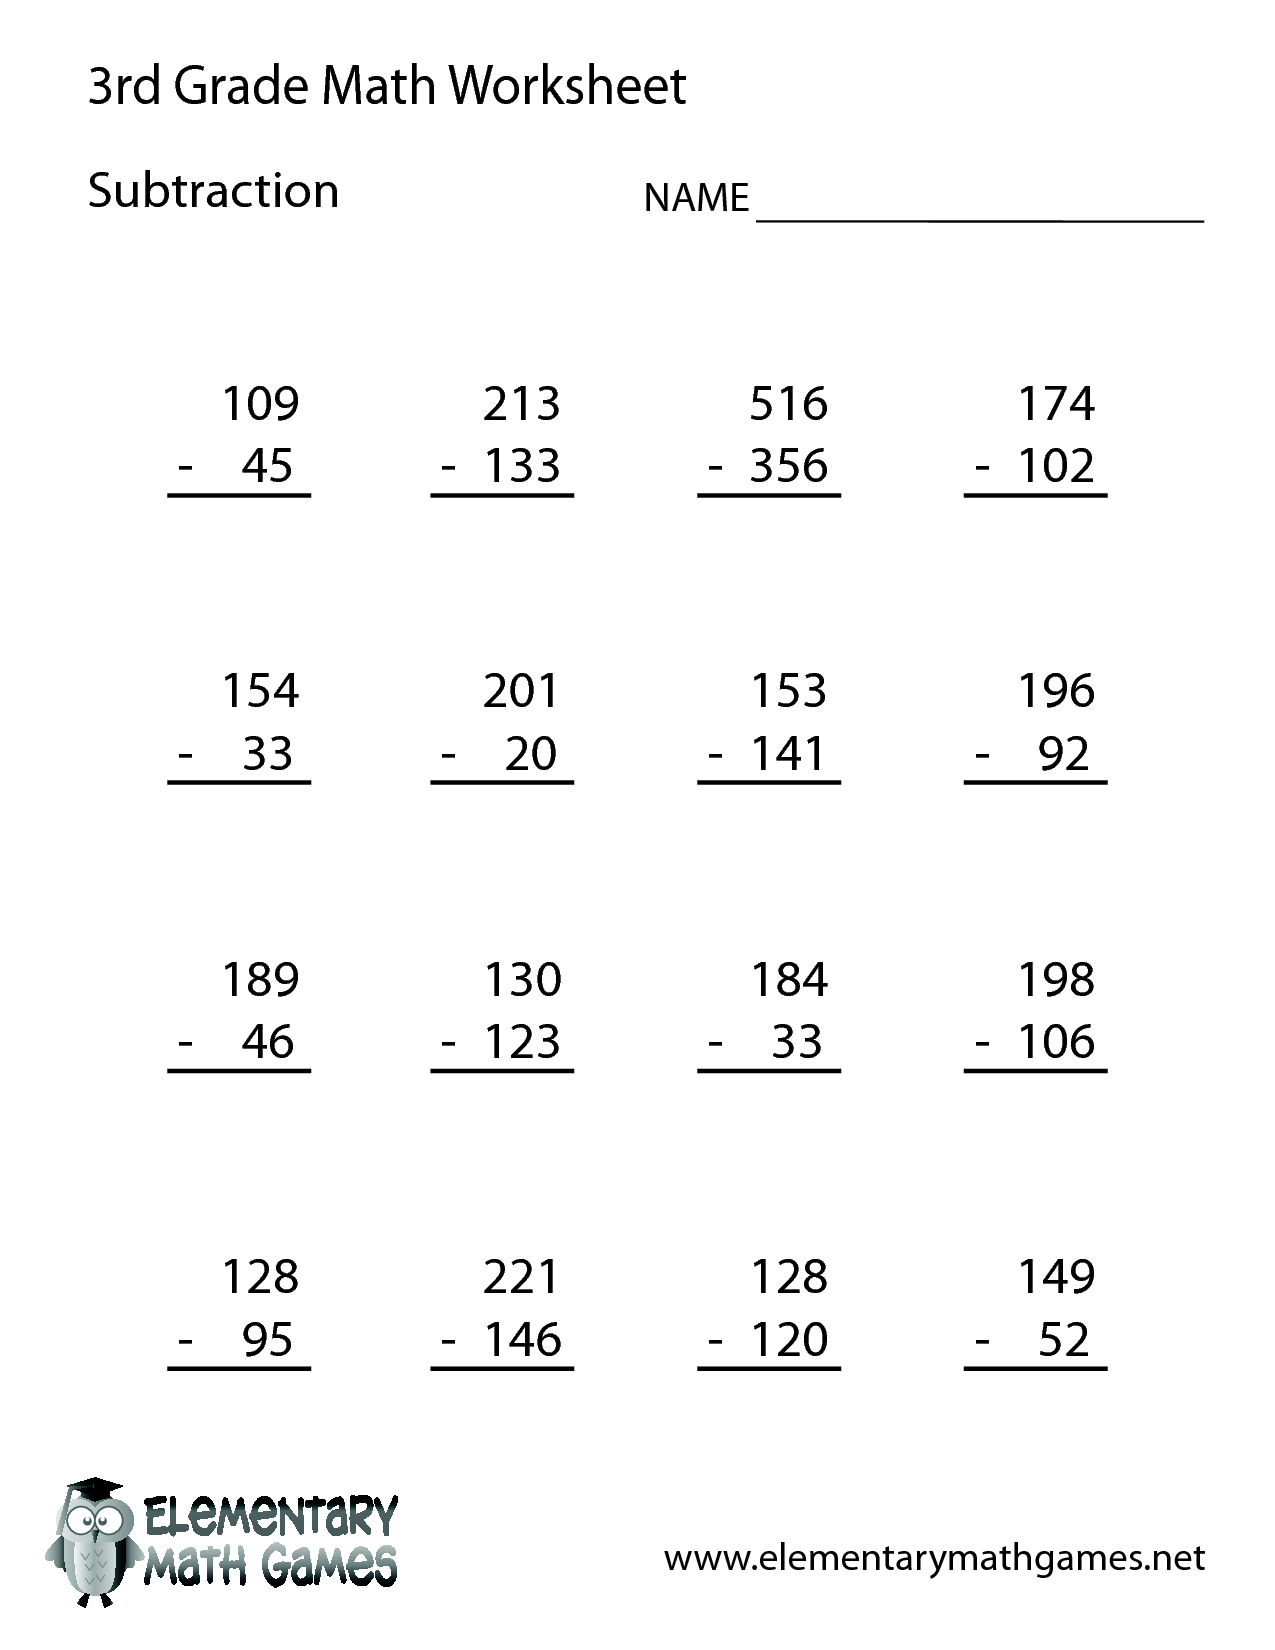 Printable Subtraction Worksheets For 3rd Grade Worksheet Kids – 3d Grade Math Worksheets